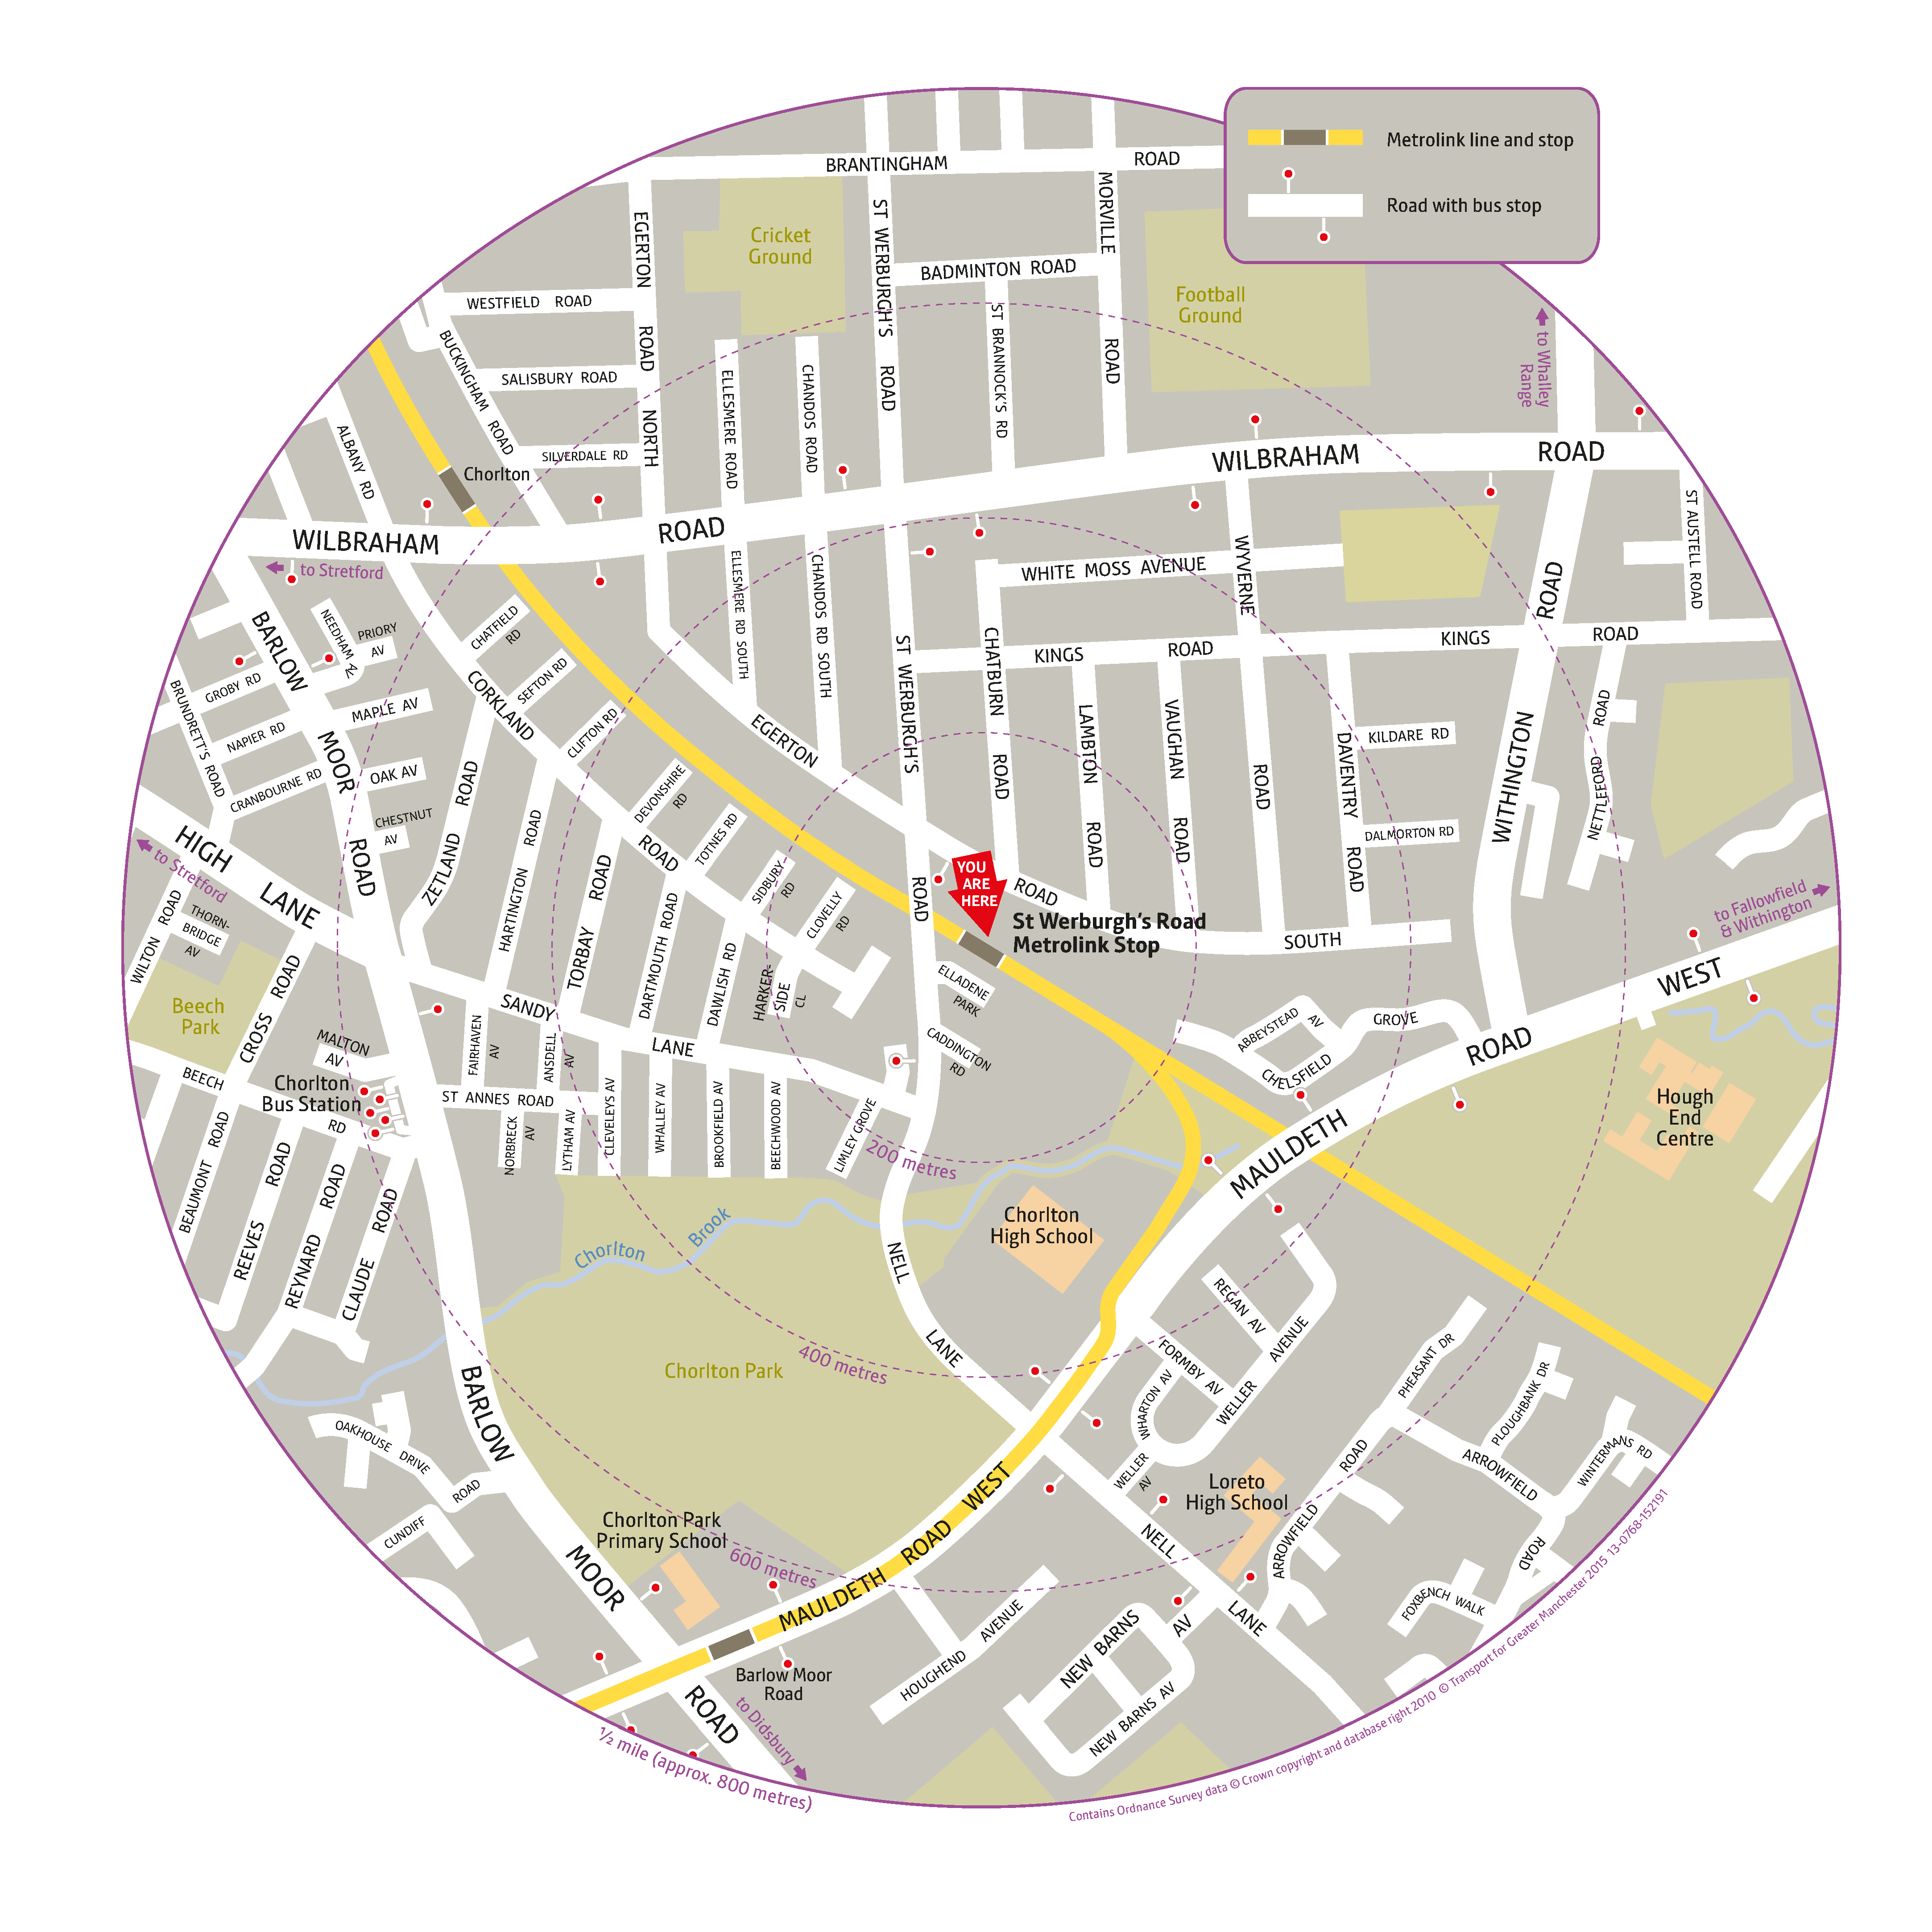 Local area map for St Werburgh's Road tram stop